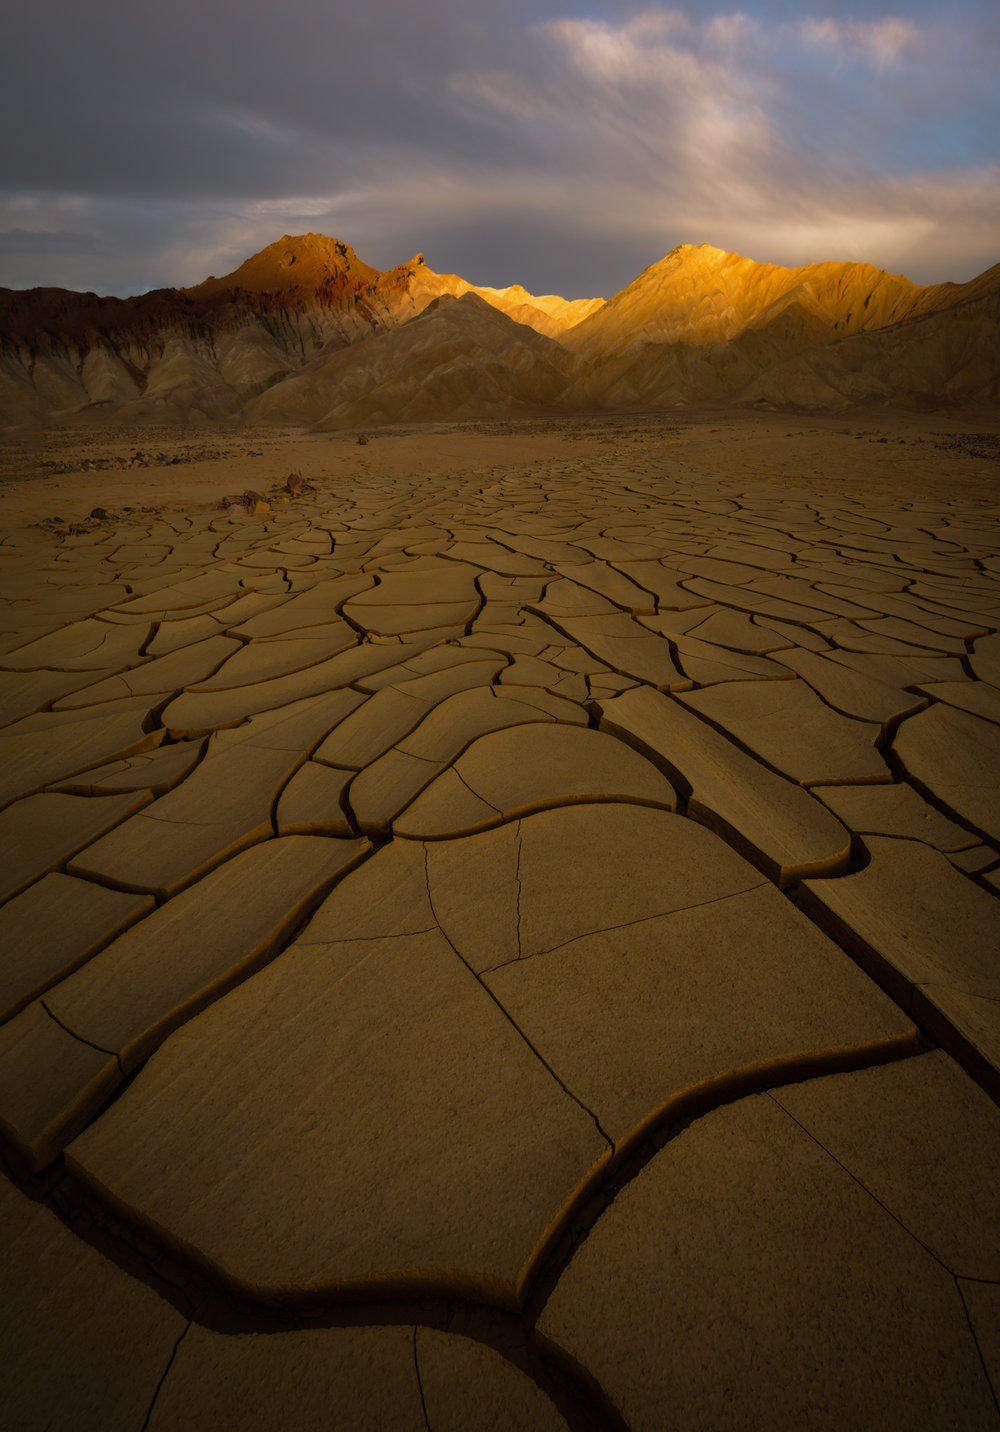 Indescribable mud cracks point to sunset's last light.